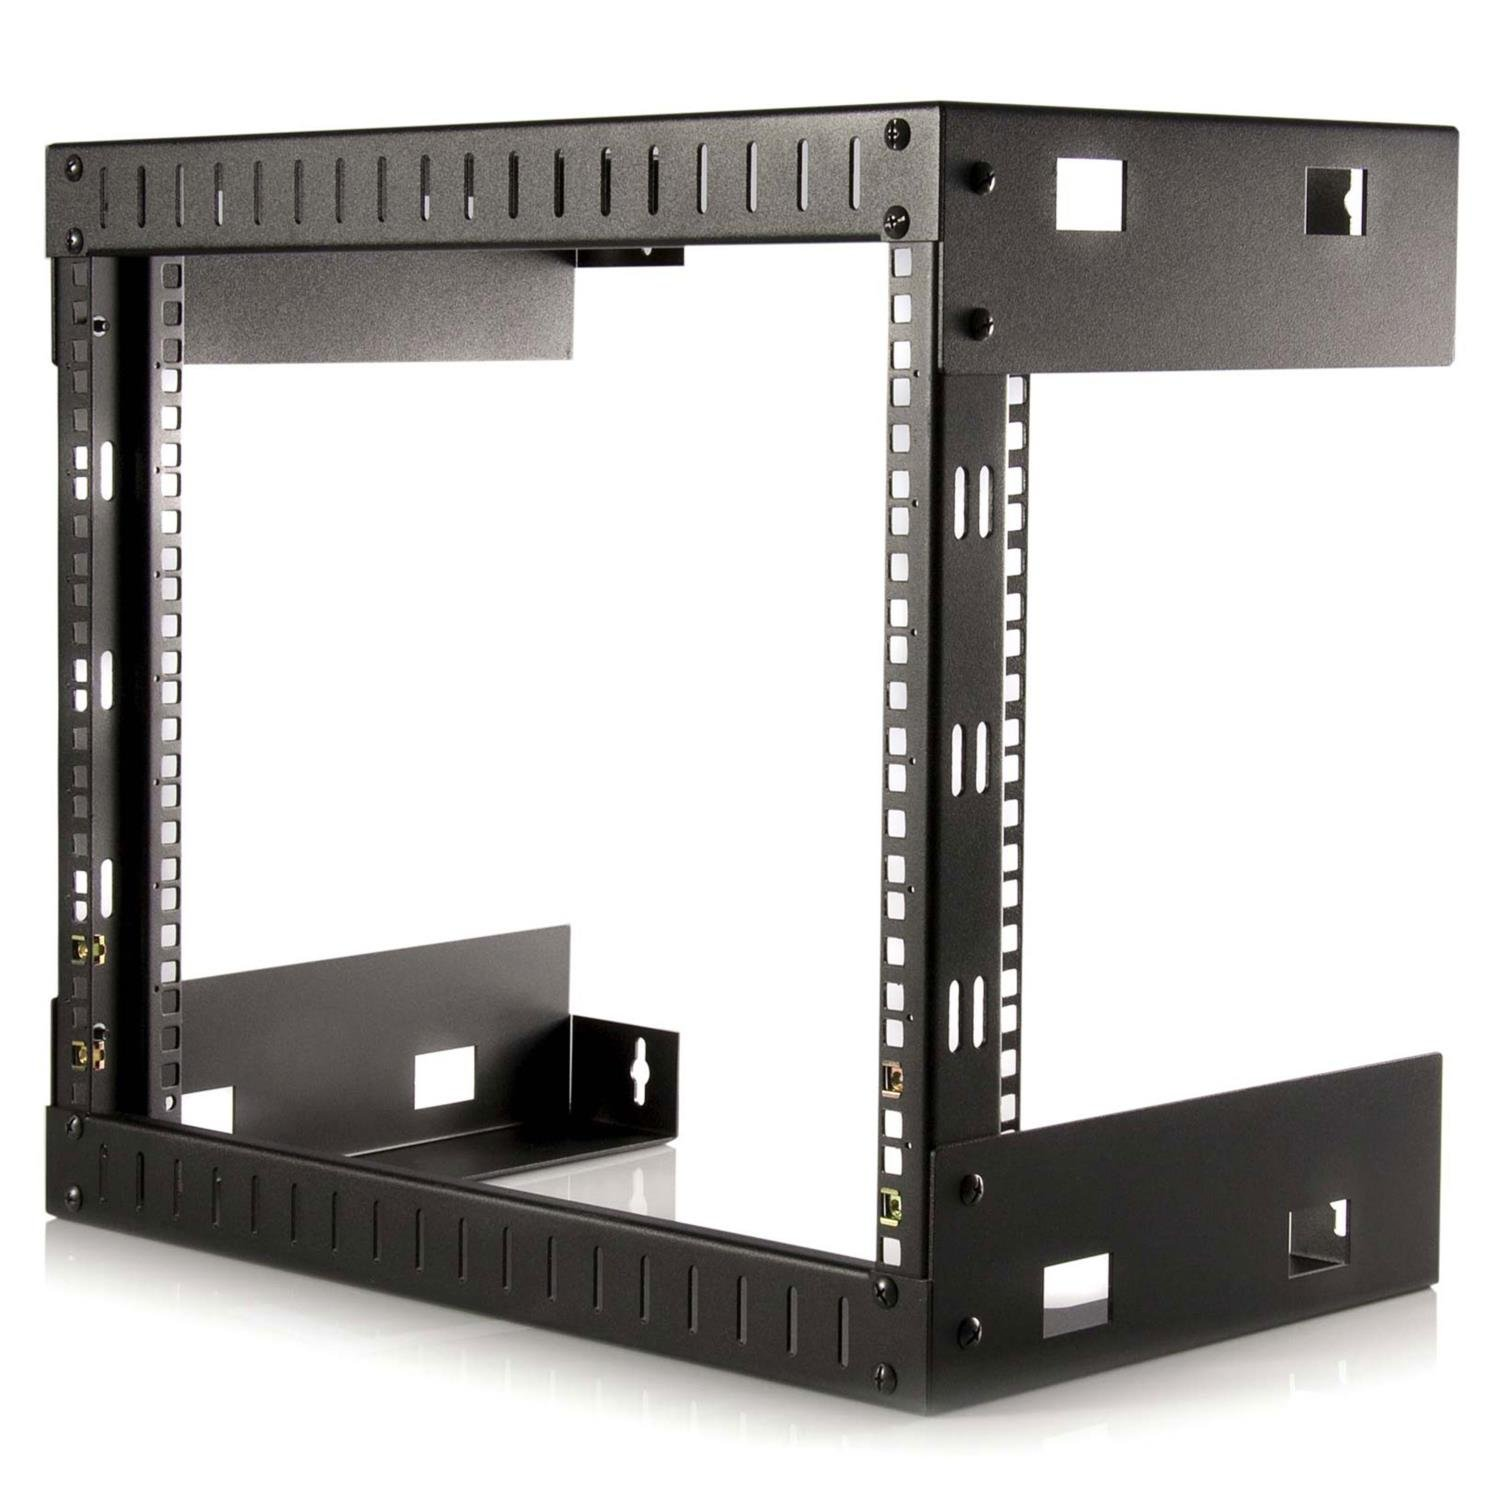 enclosure products securityinfowatch eren series video equipment r mount com rack product inch